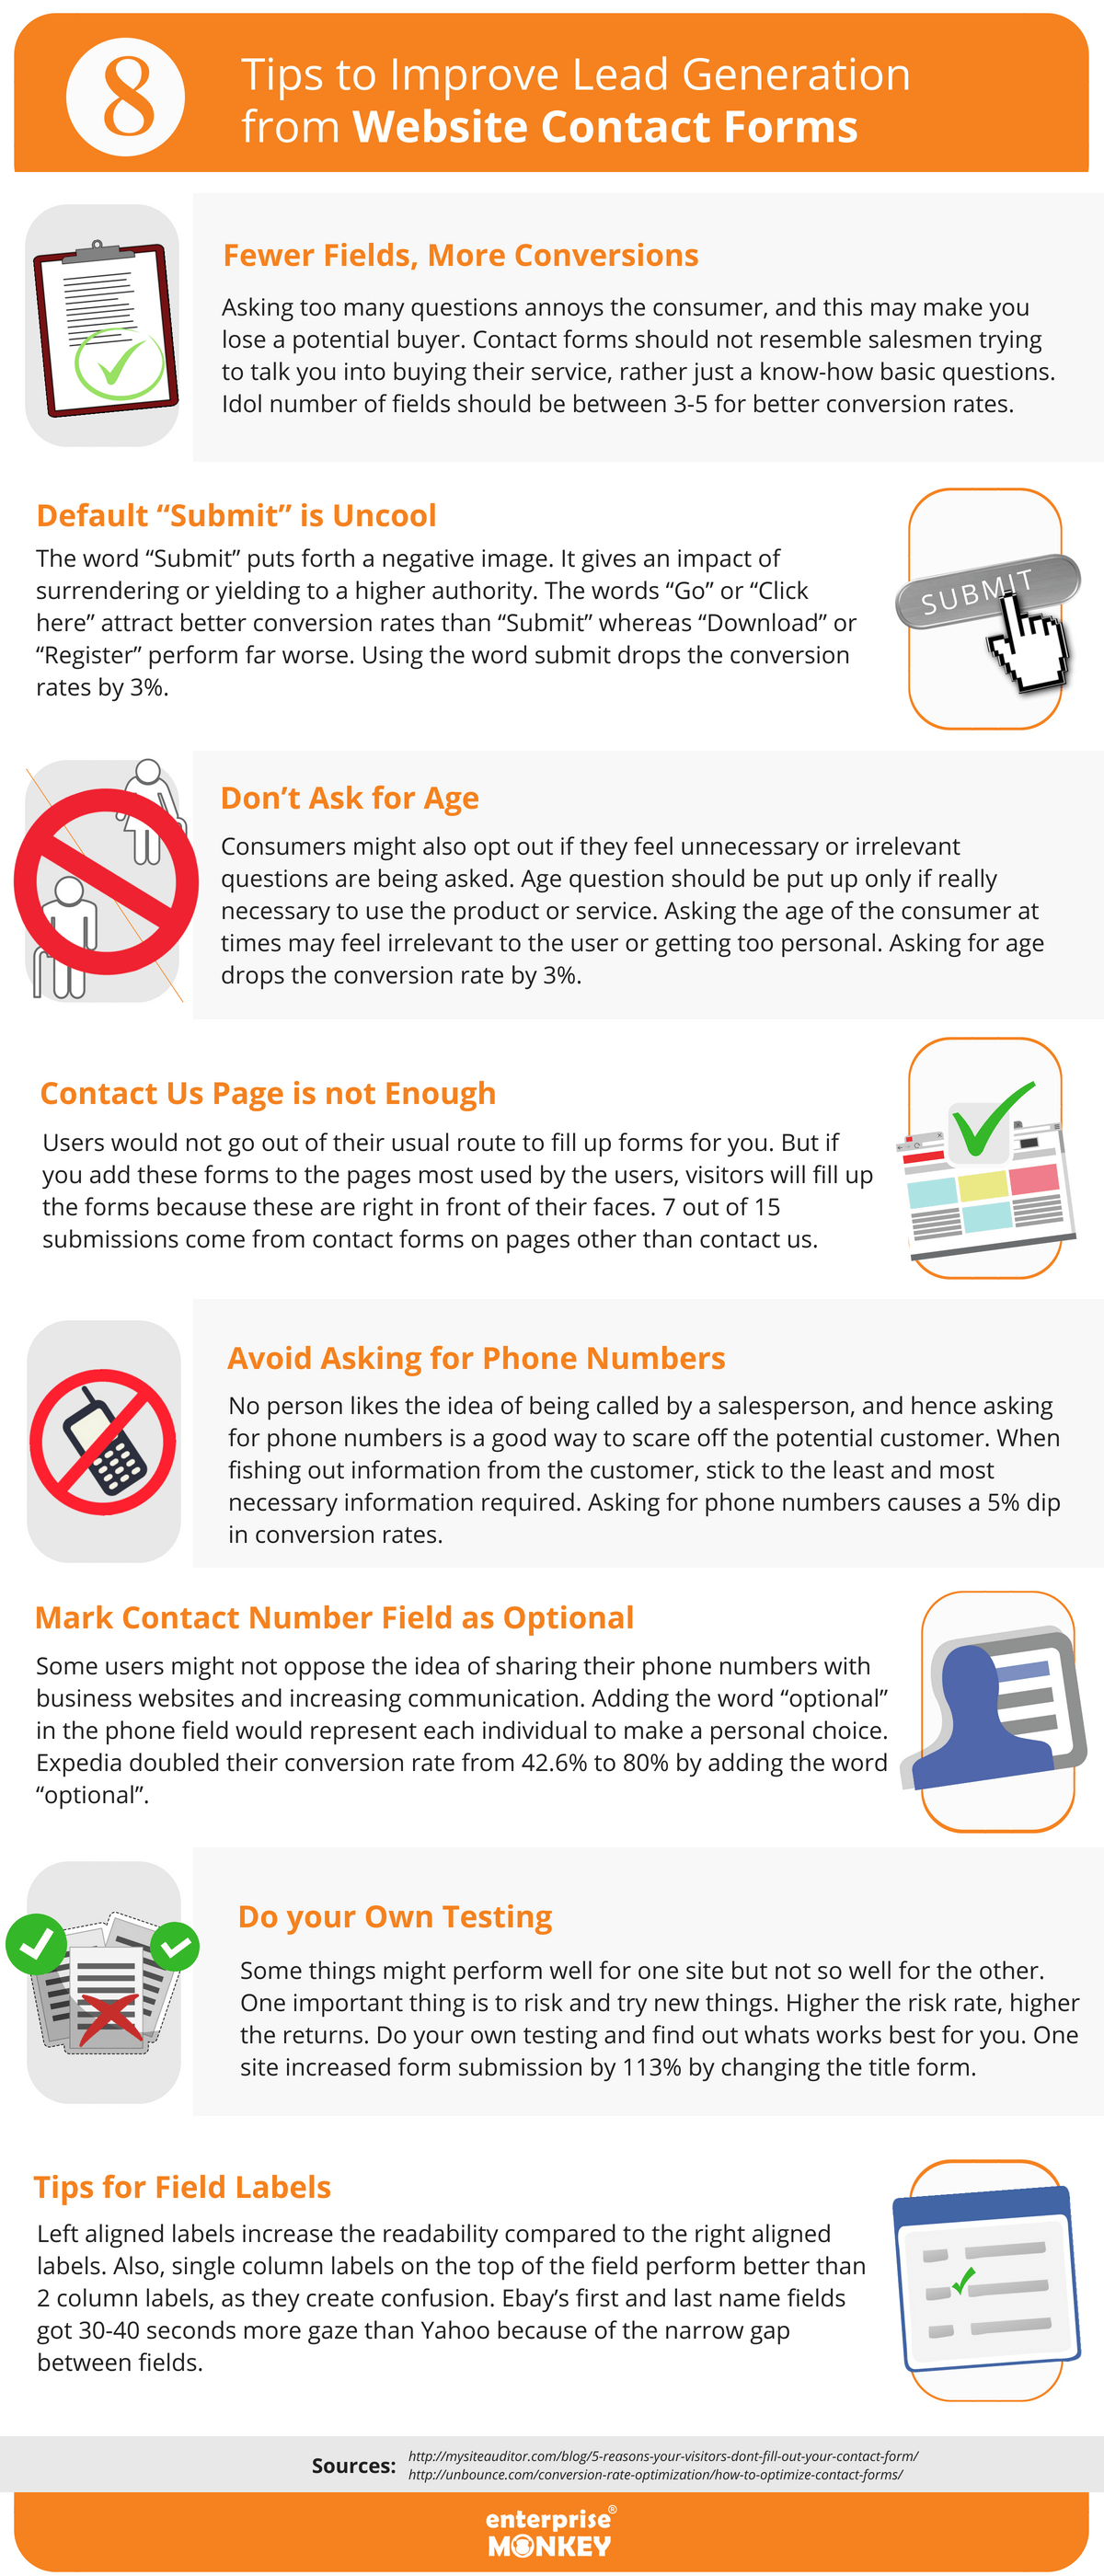 8 tips to improve lead generation from website contact forms [infographic]